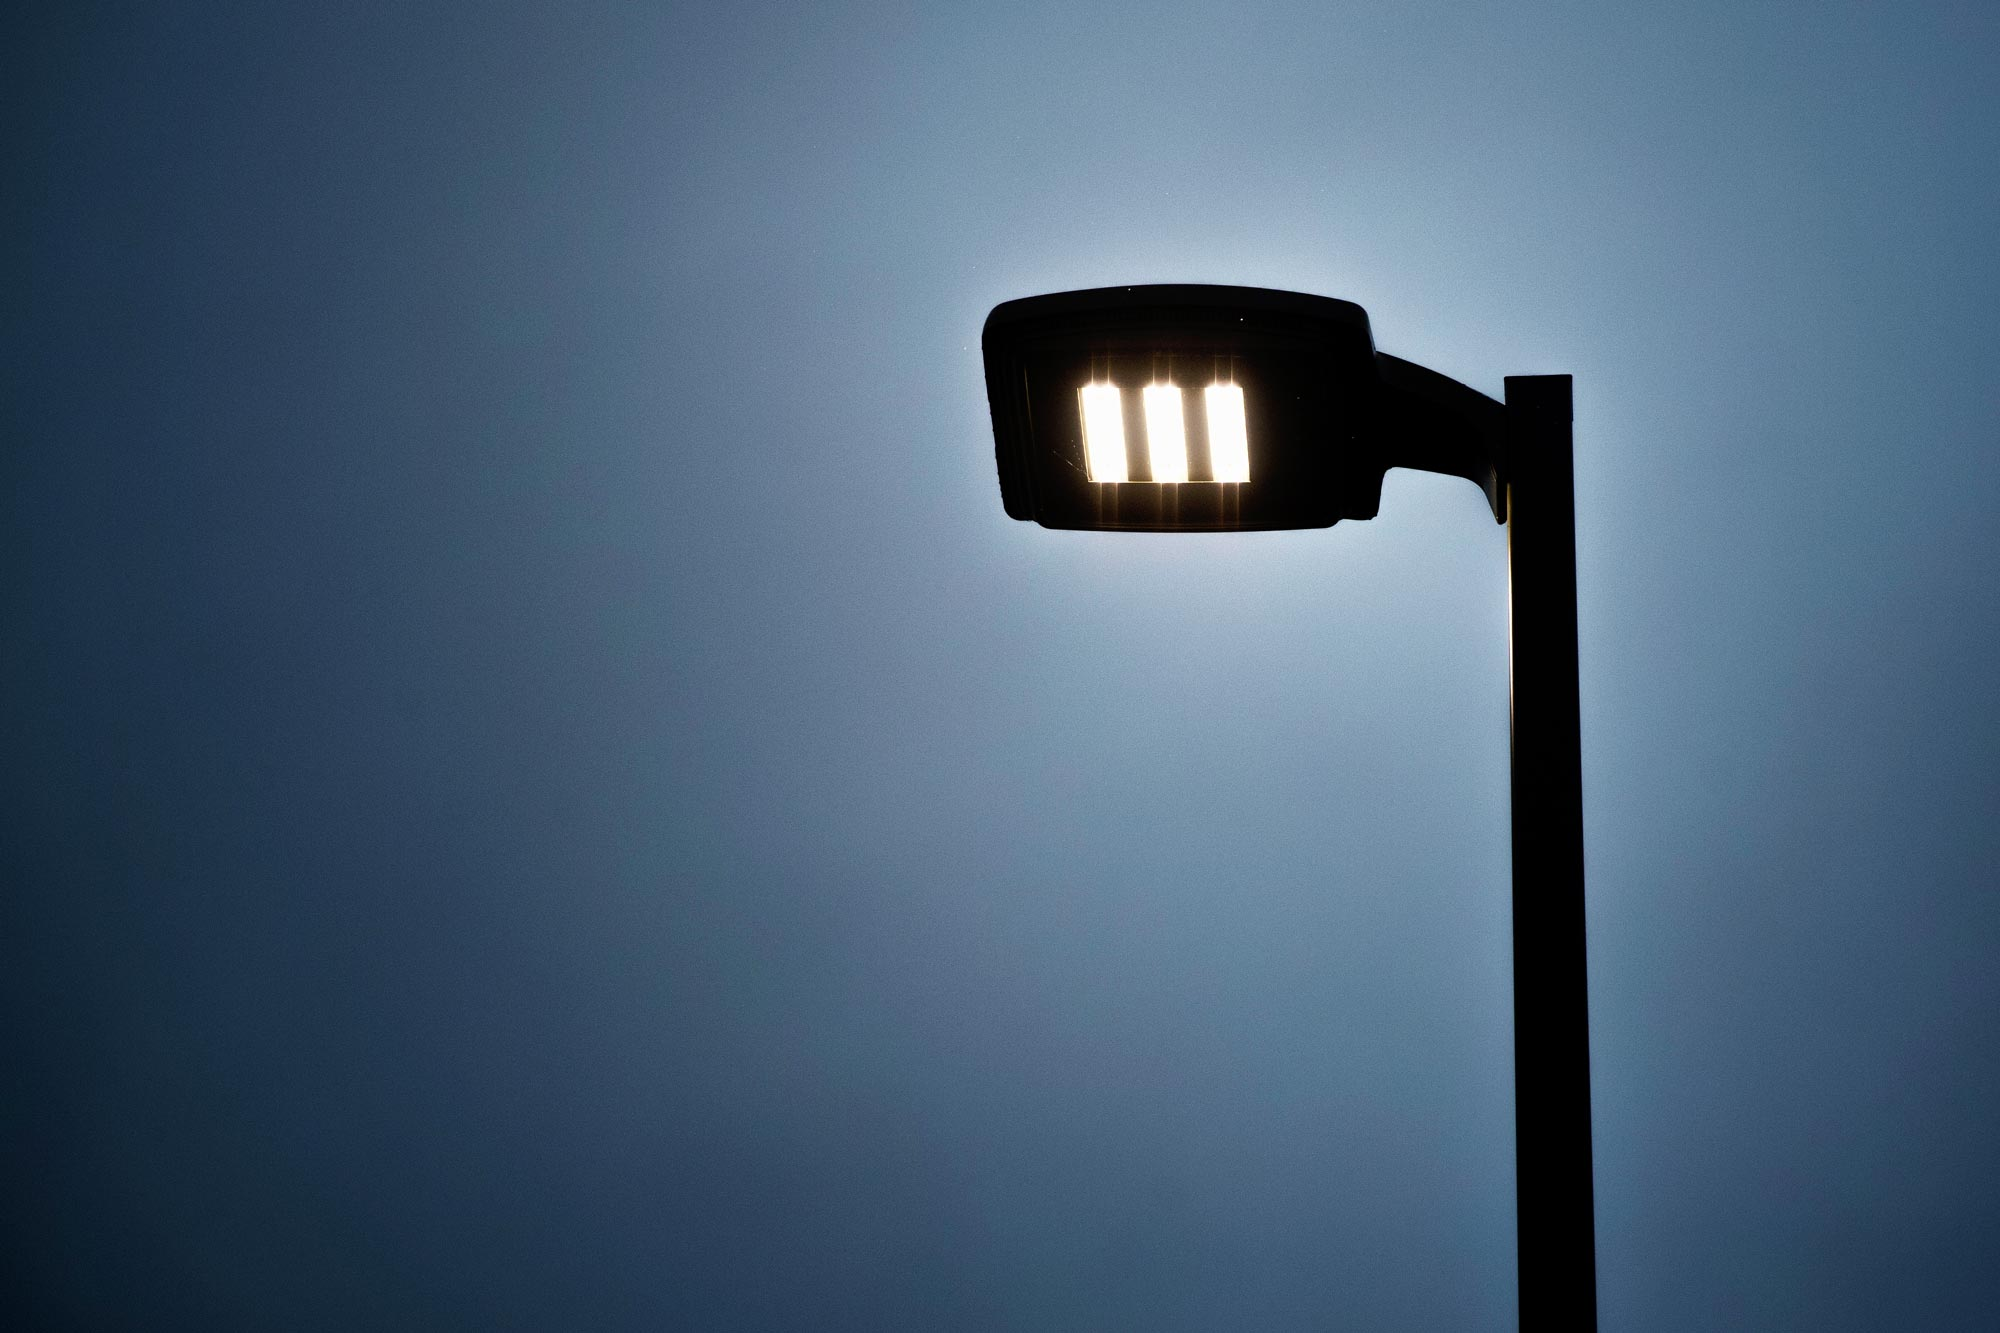 Streetlights cause light trespass, one of the three main kinds of light pollution that reduces visibility of the night sky.